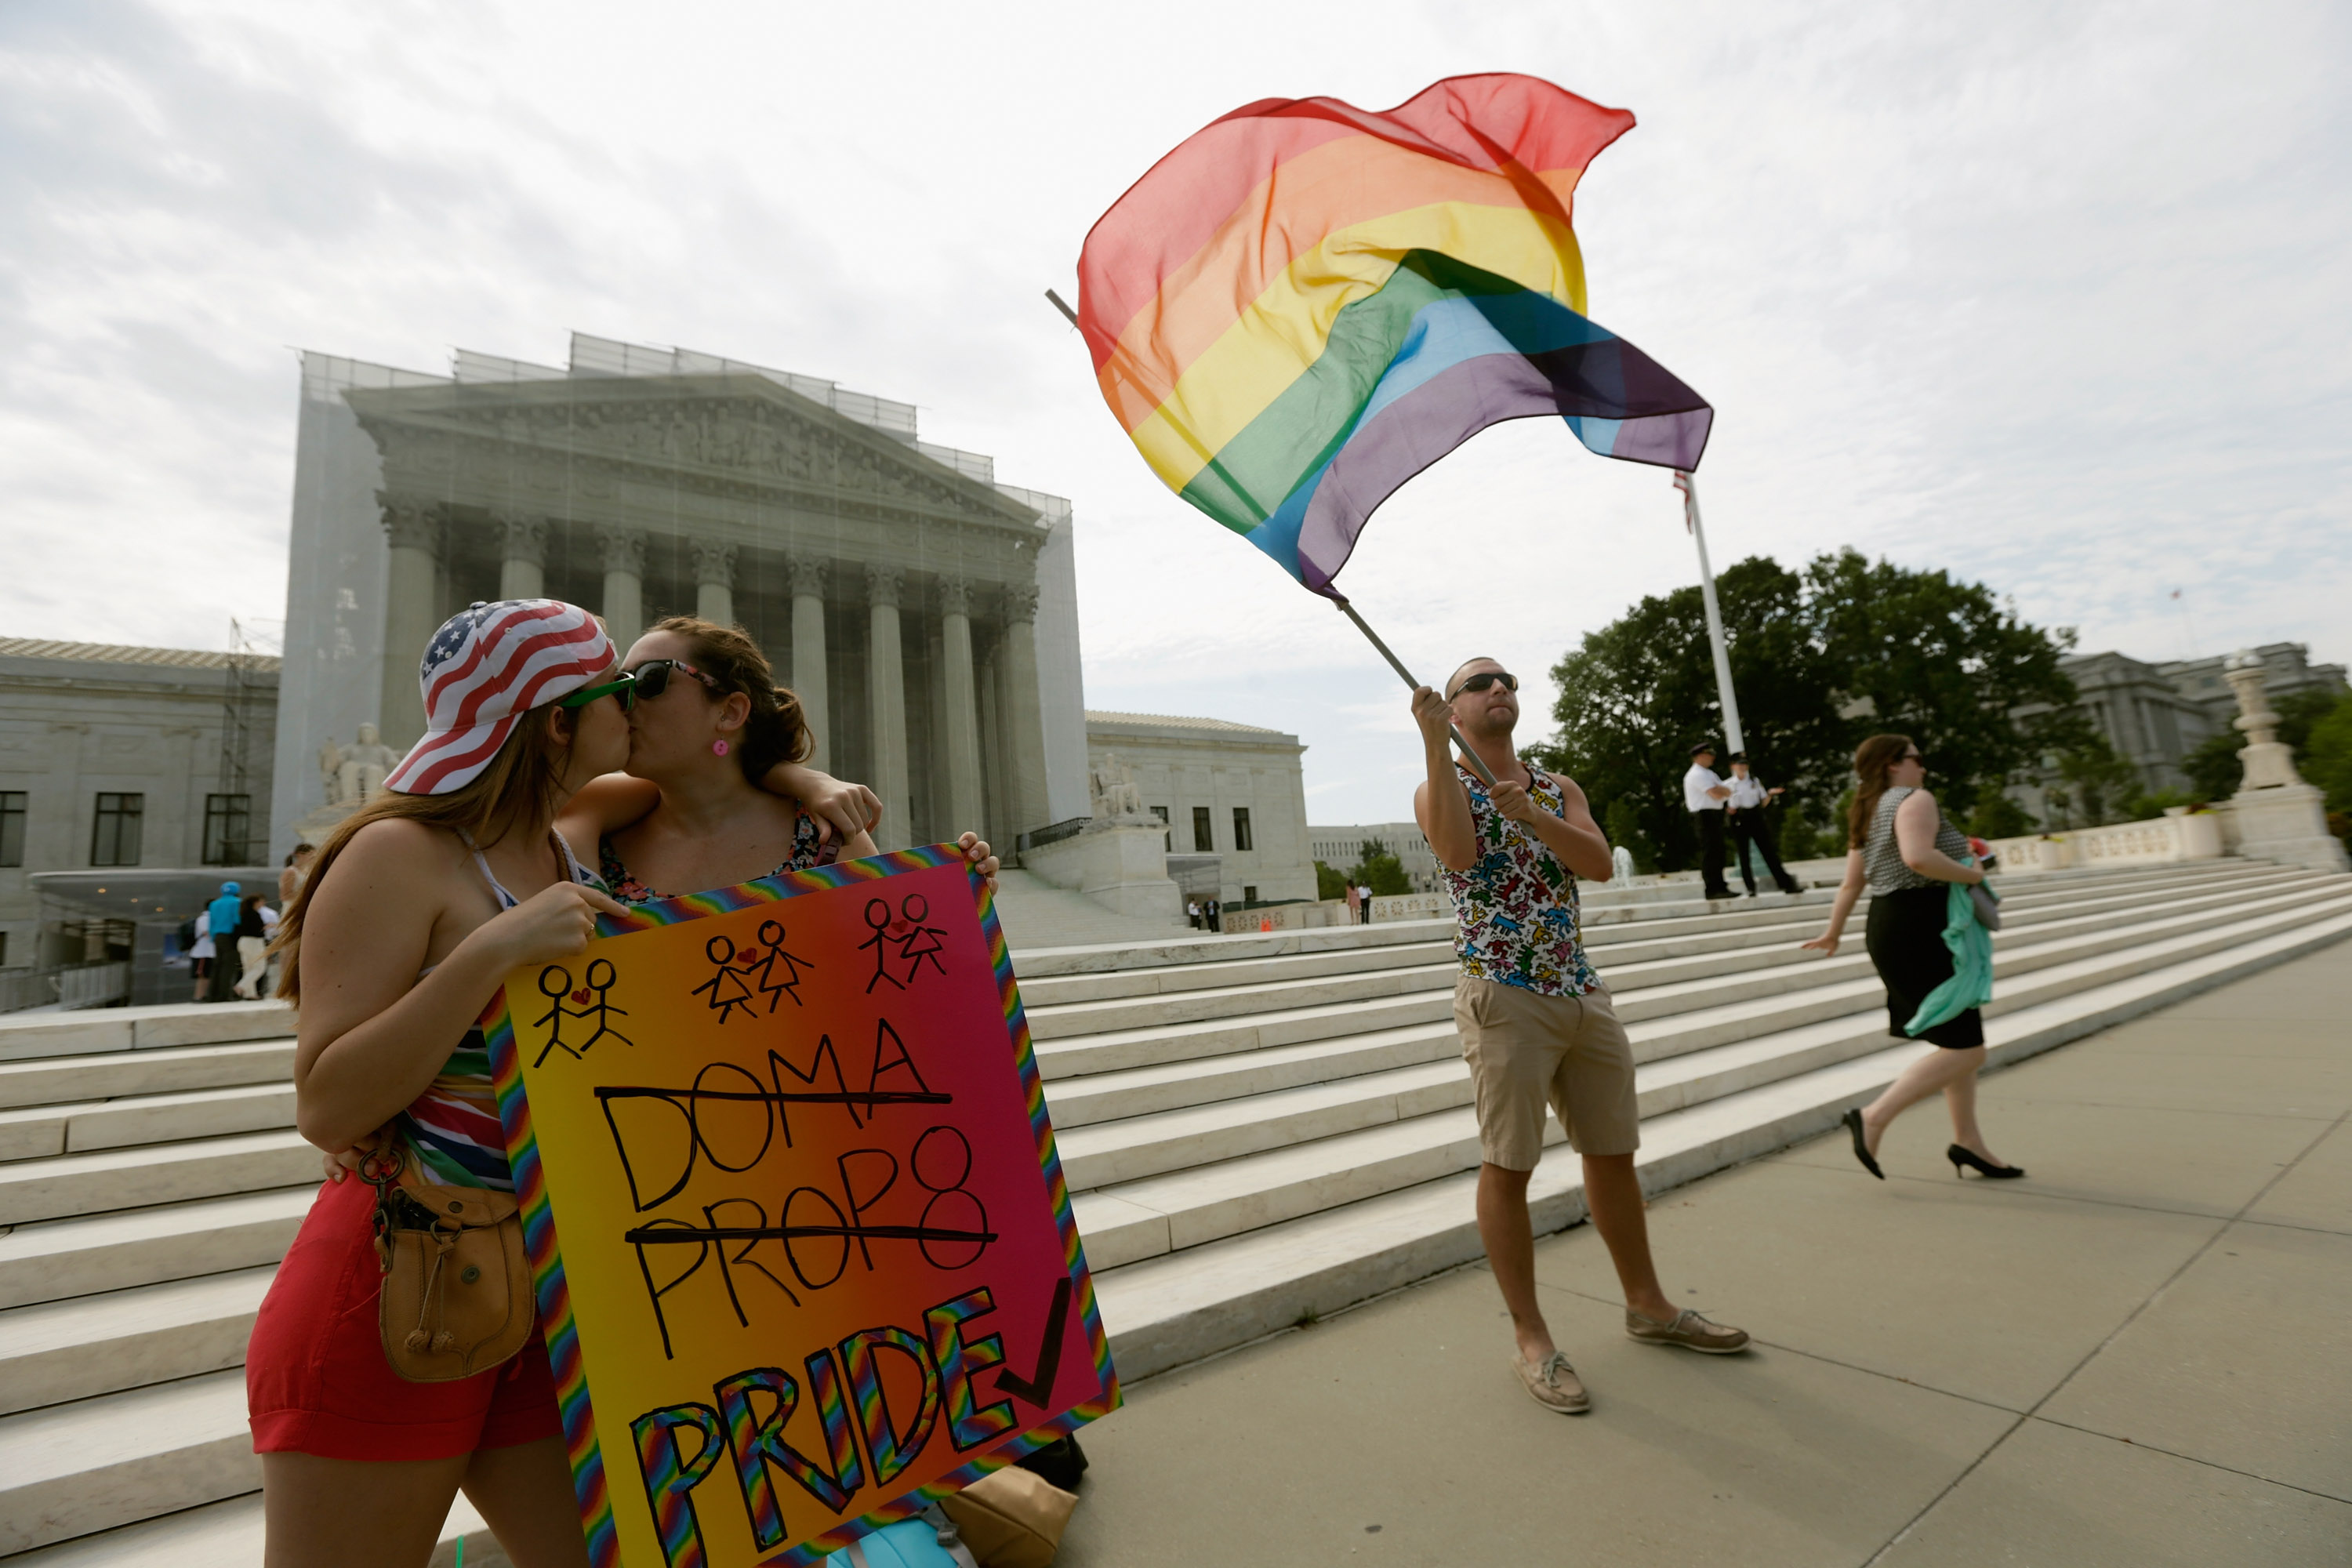 doma unconstitutional This is the first federal law ever declared unconstitutional by an appellate court for discriminating against gays and lesbians, and it's almost certainly headed for the supreme court.